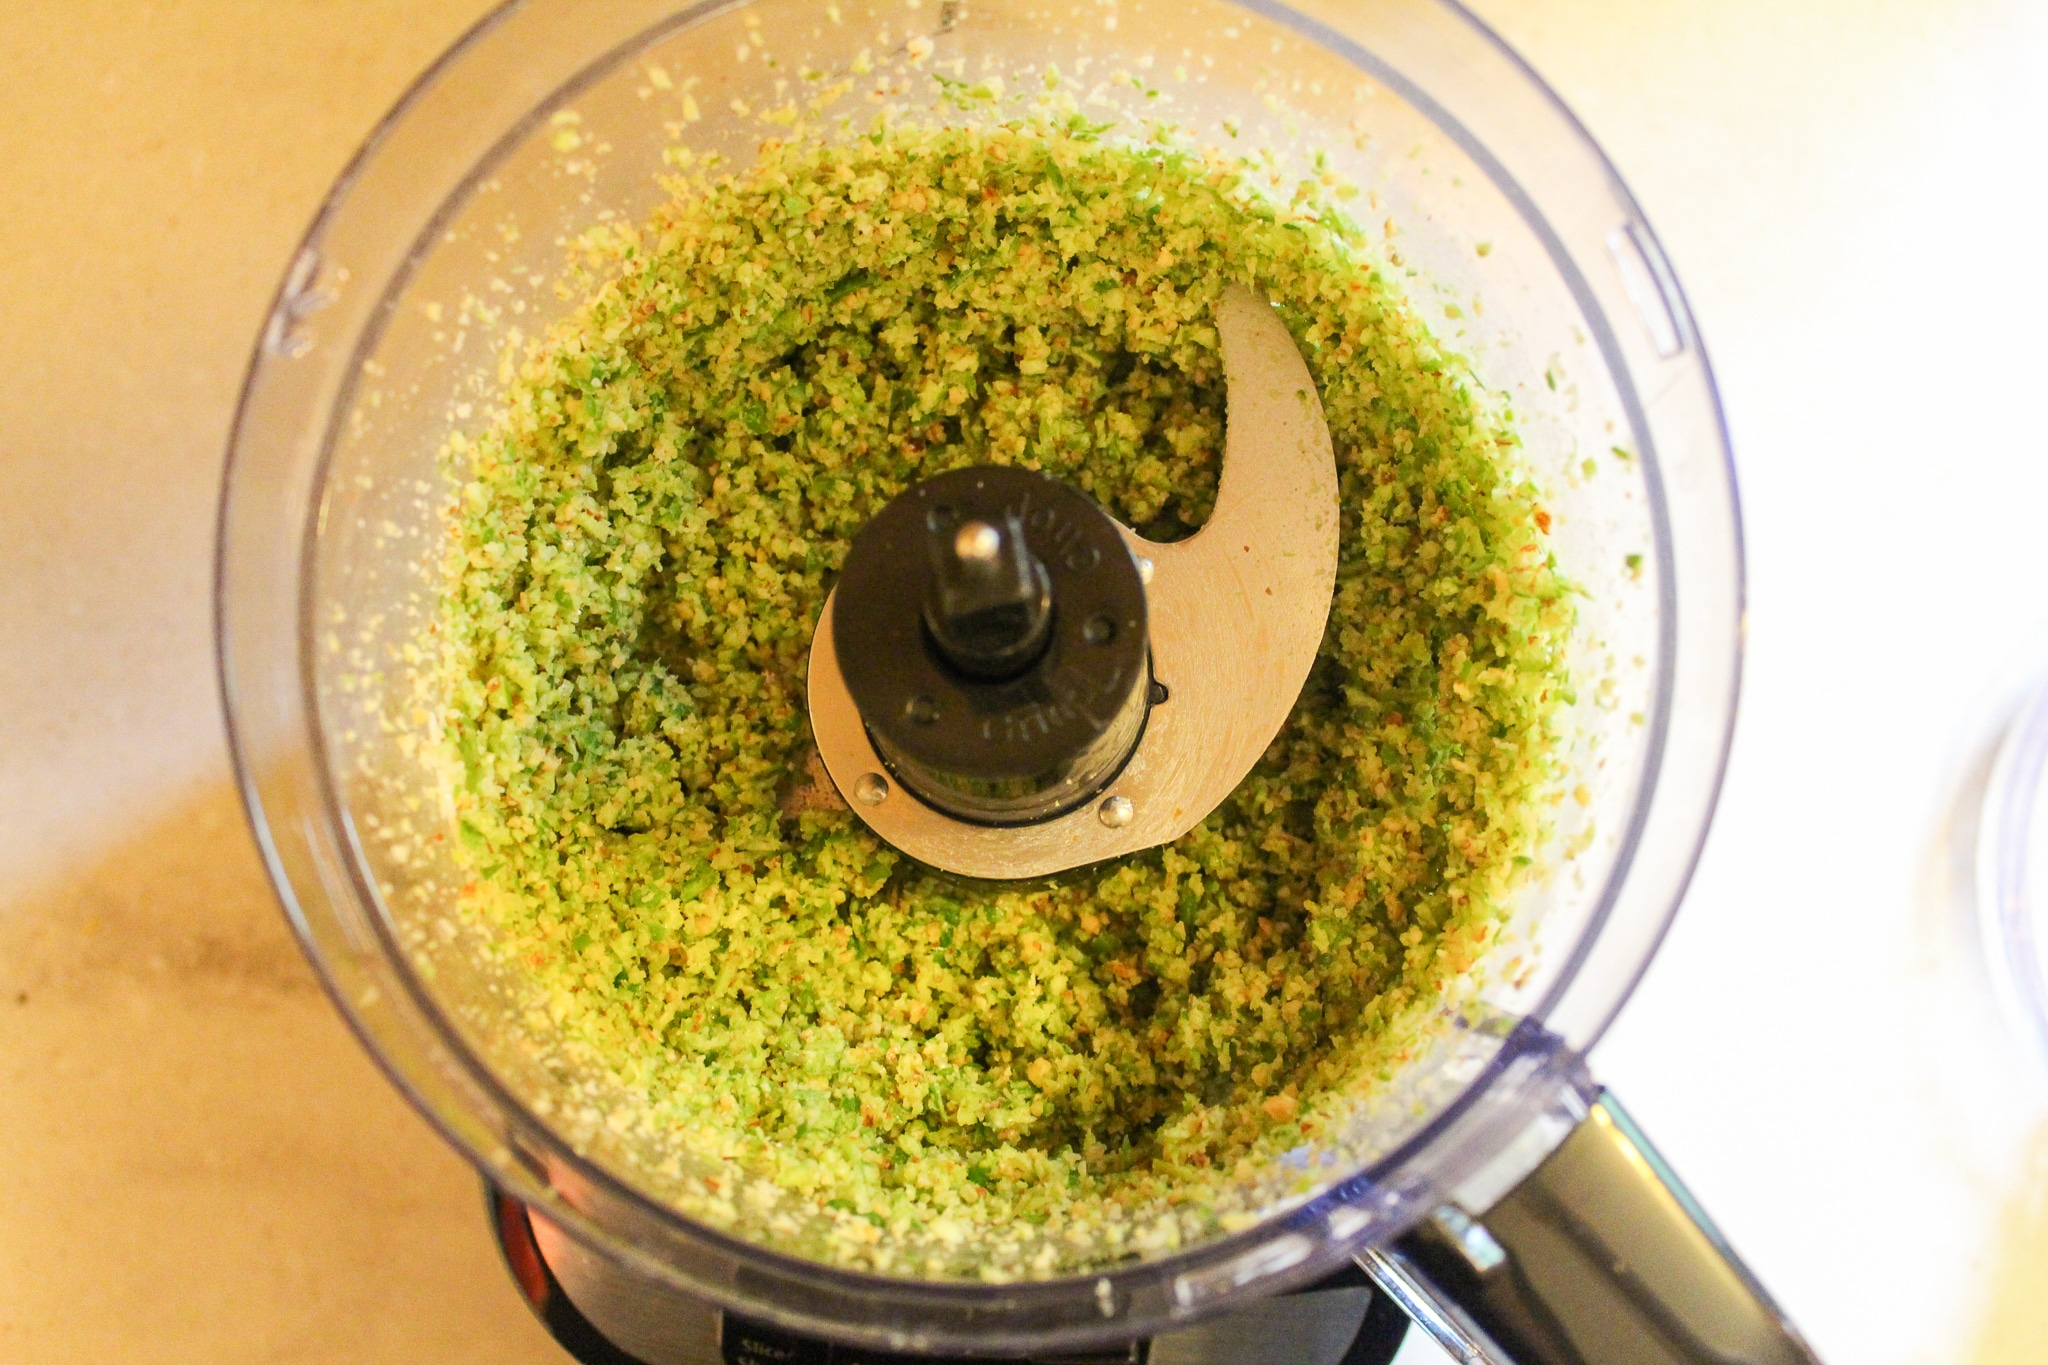 scapes and almonds in food processor blended